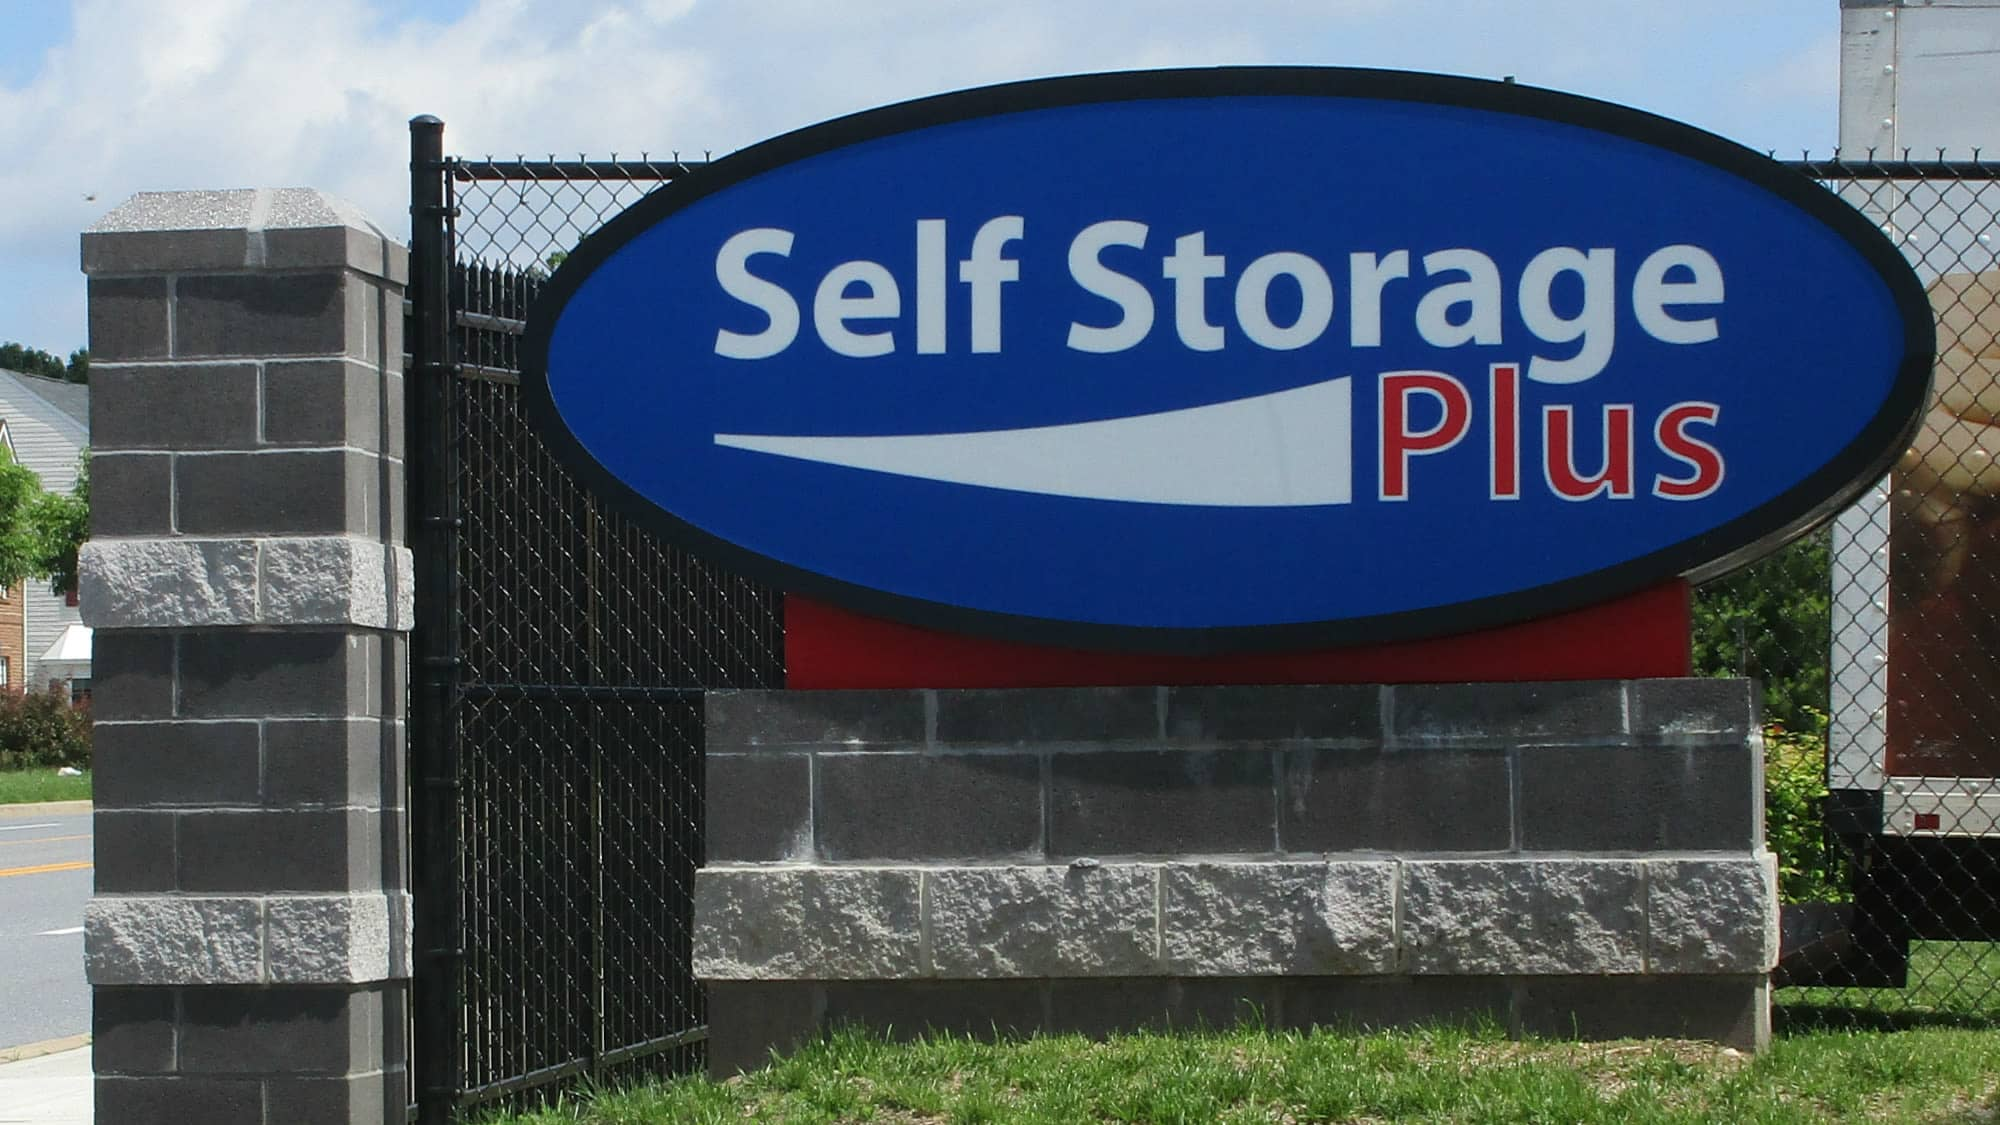 Self Storage Plus Welcome Sign In Owings Mills